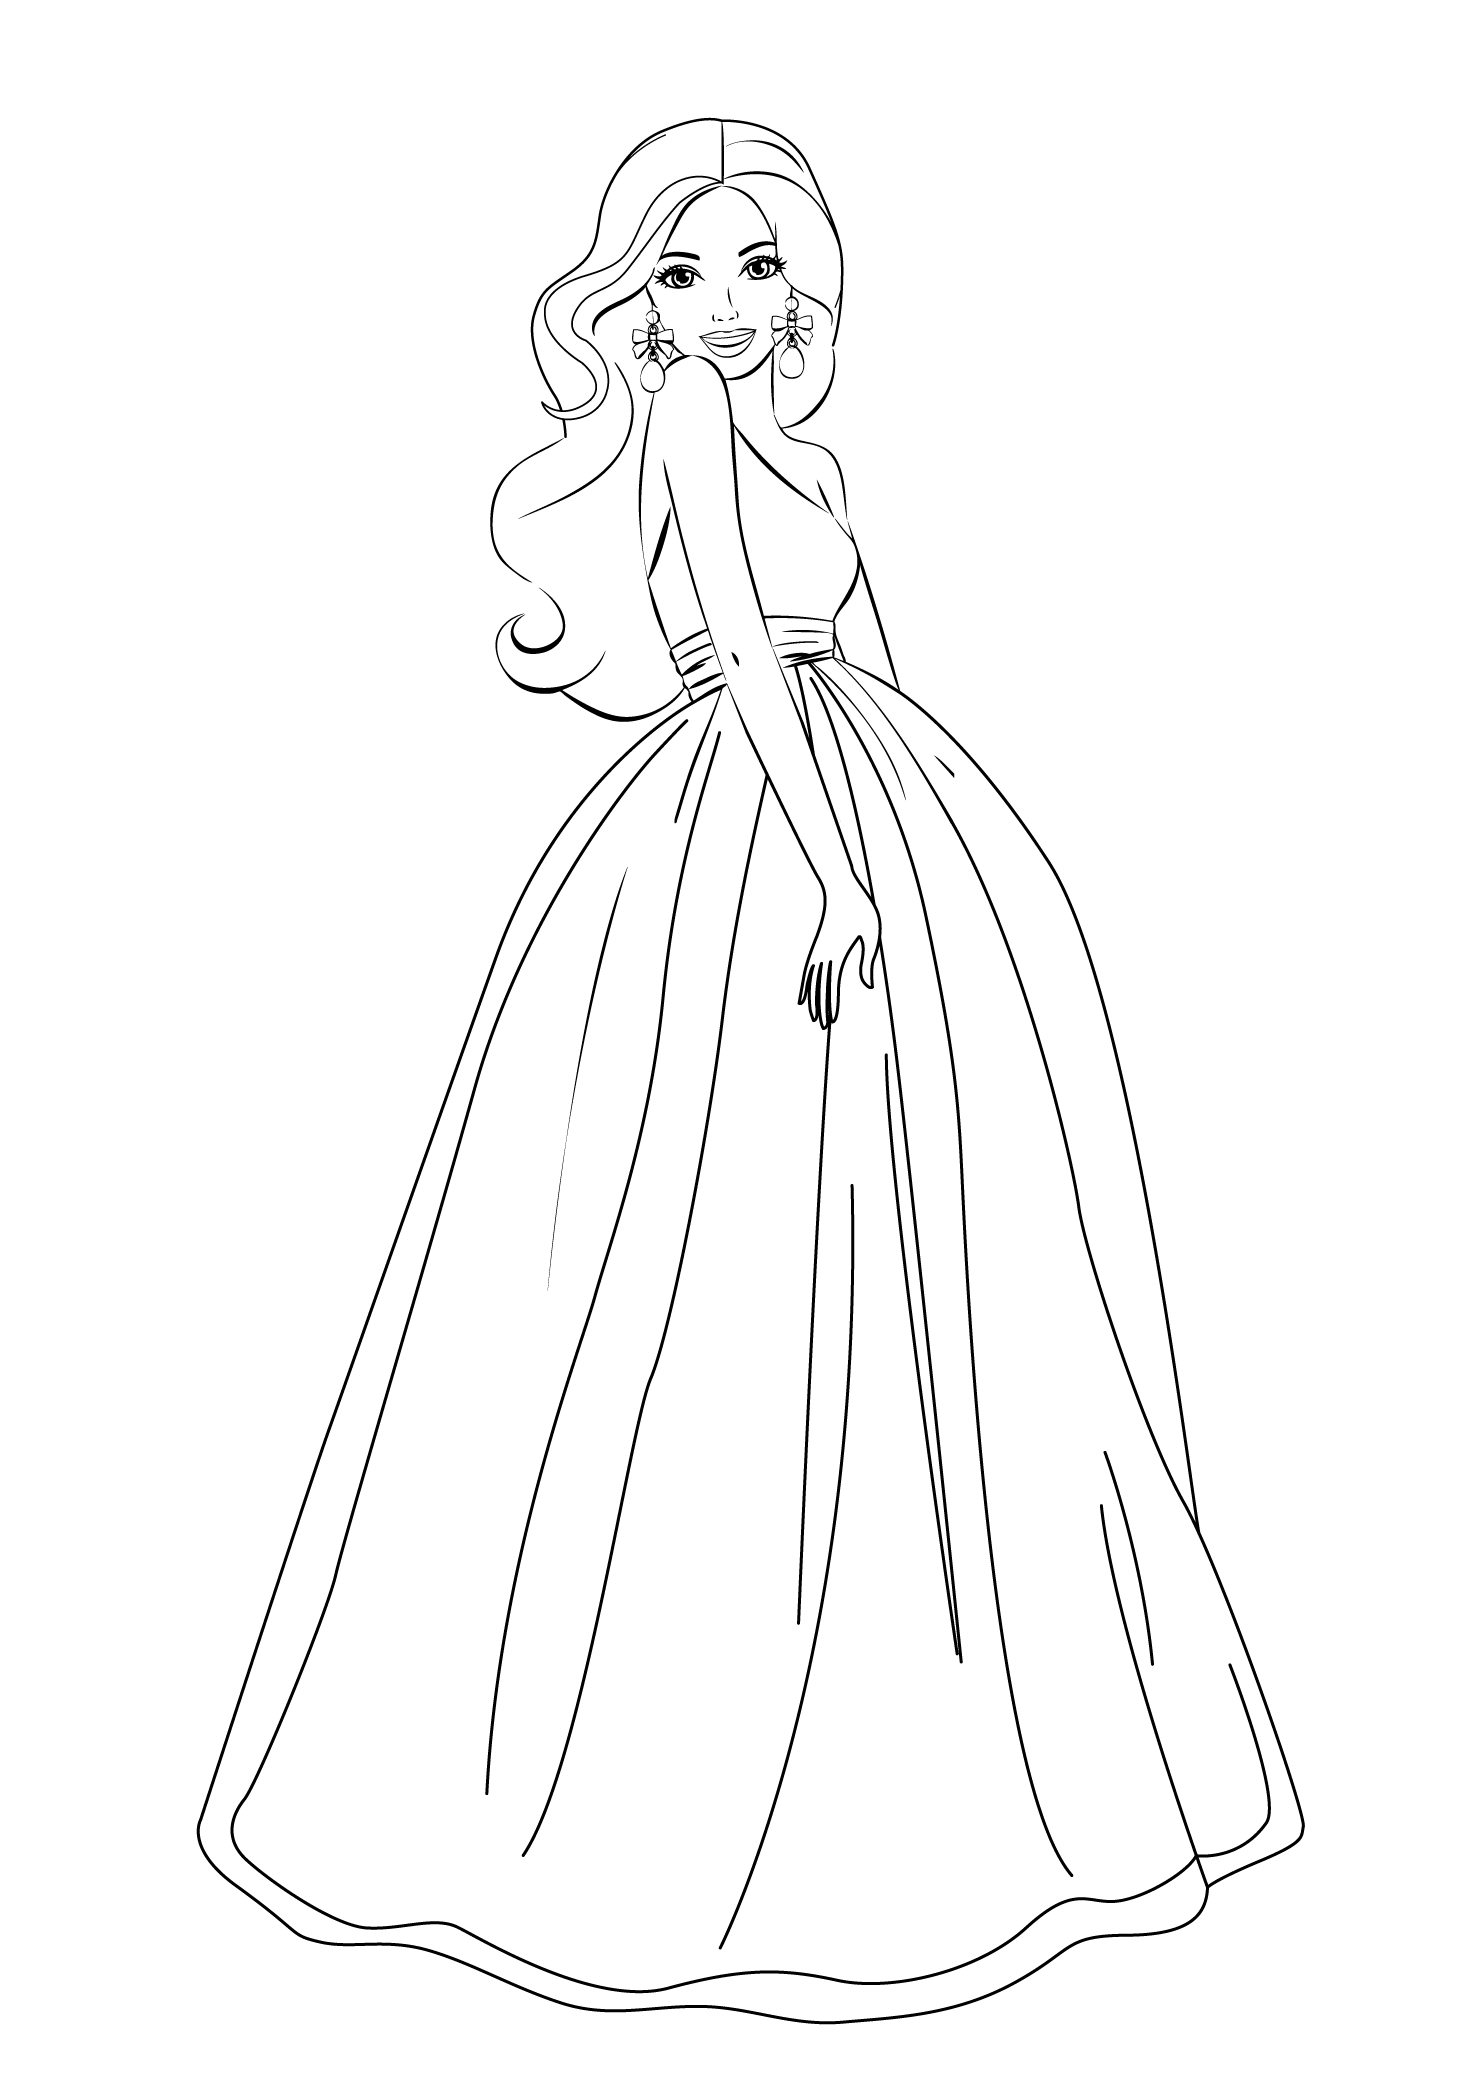 Barbie coloring pages for girls free printable | Barbie | Barbie ...